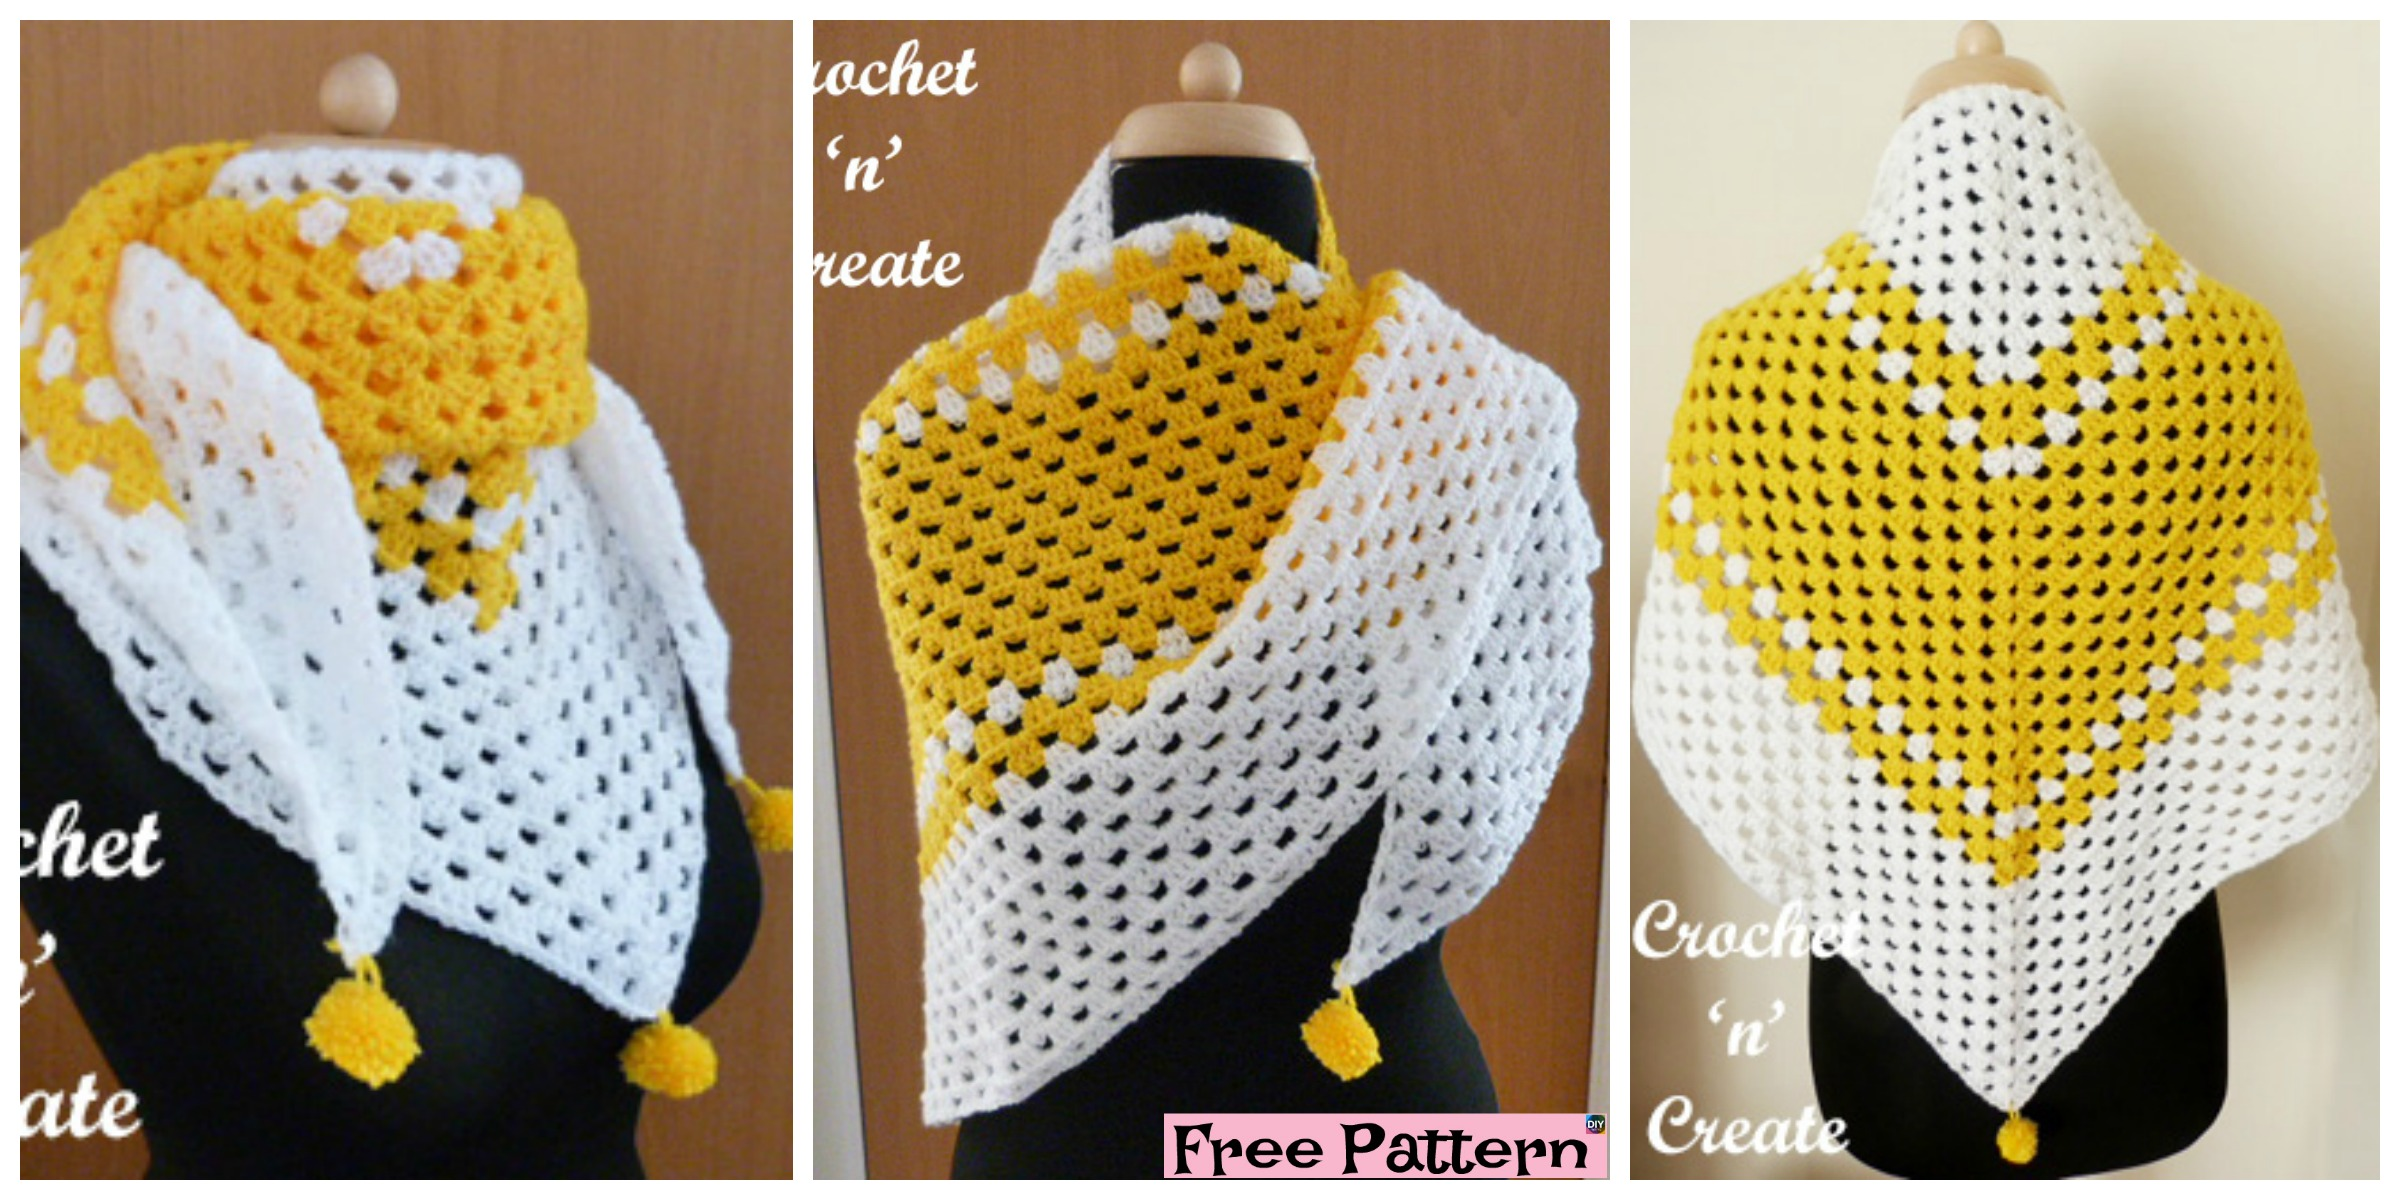 Beautiful Crochet Granny Shawl – Free Pattern